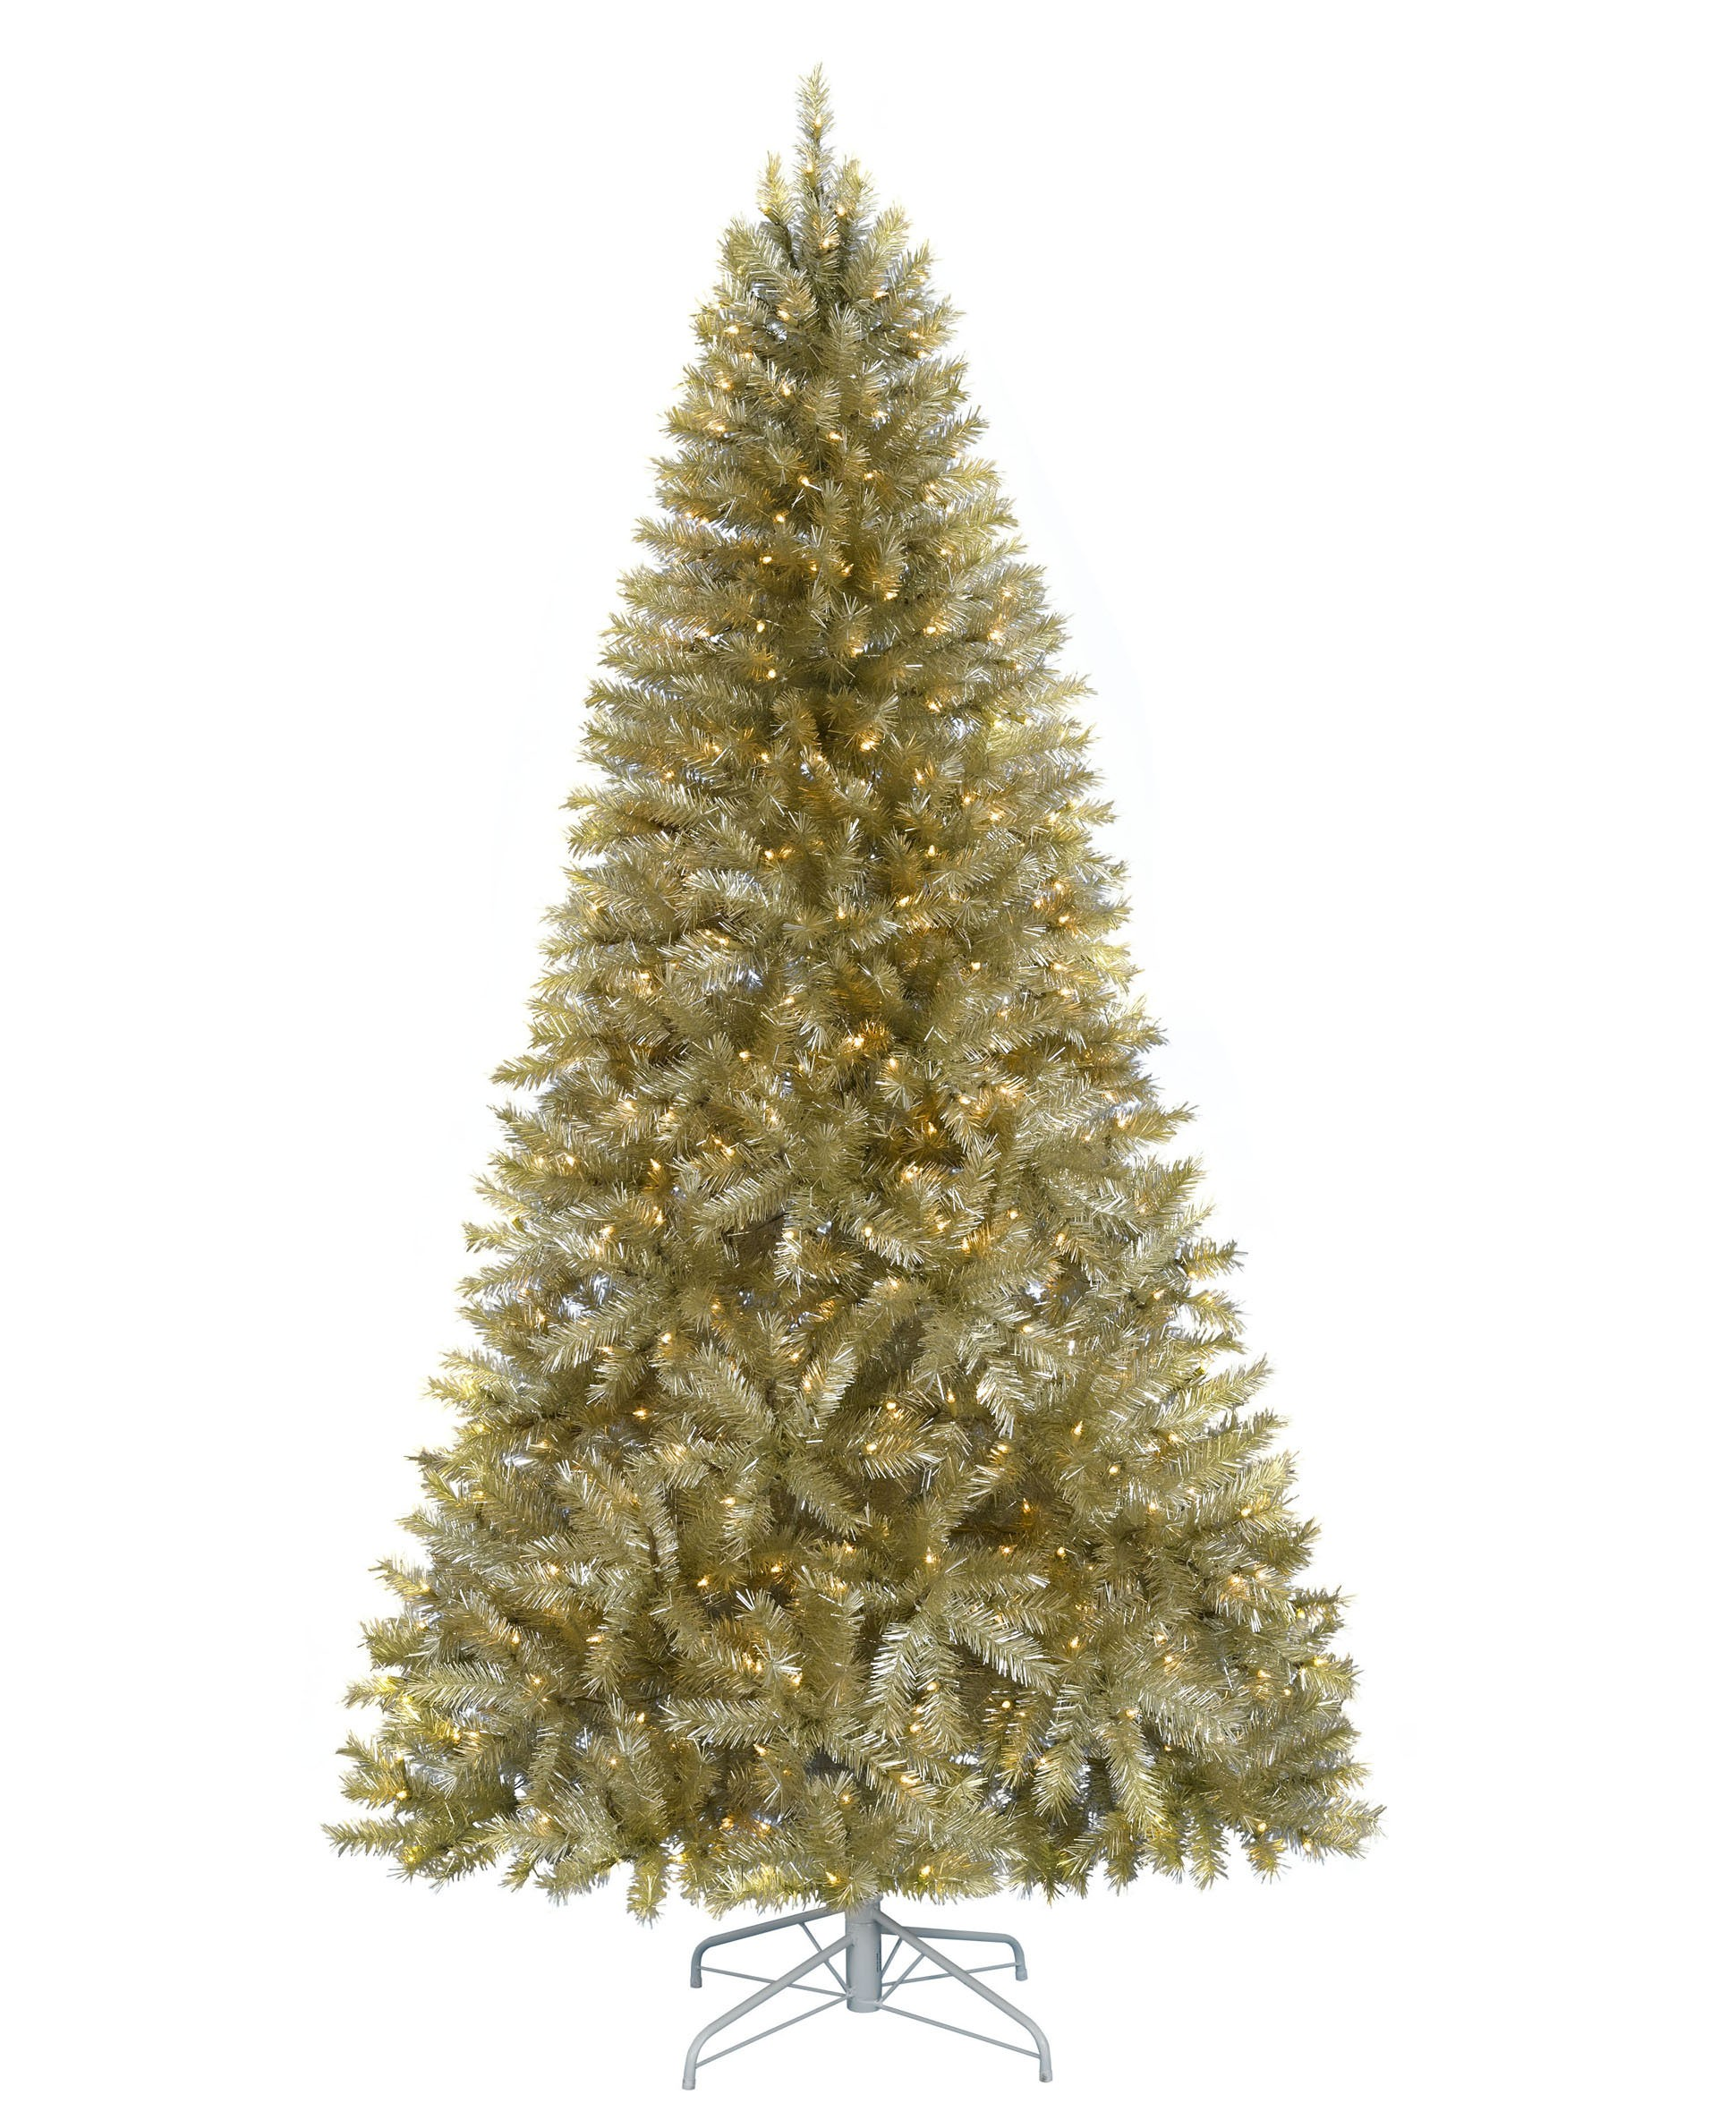 Artificial Christmas Trees - Buy Online in India with Free ...